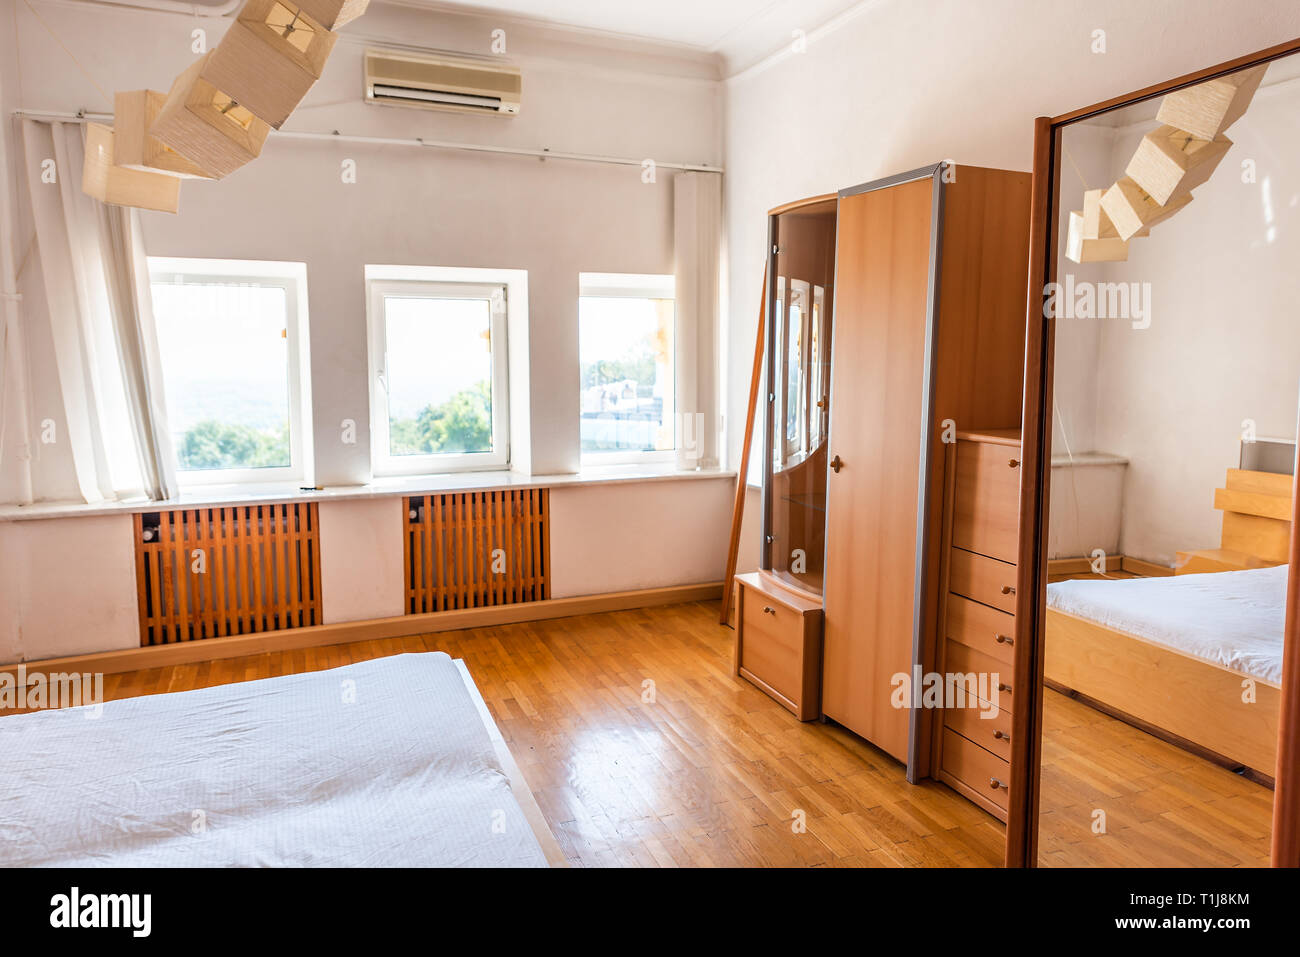 https www alamy com new clean white bed simple minimalist light wood wooden wardrobe cabinet closet or armoire in bedroom home house or apartment image241961768 html